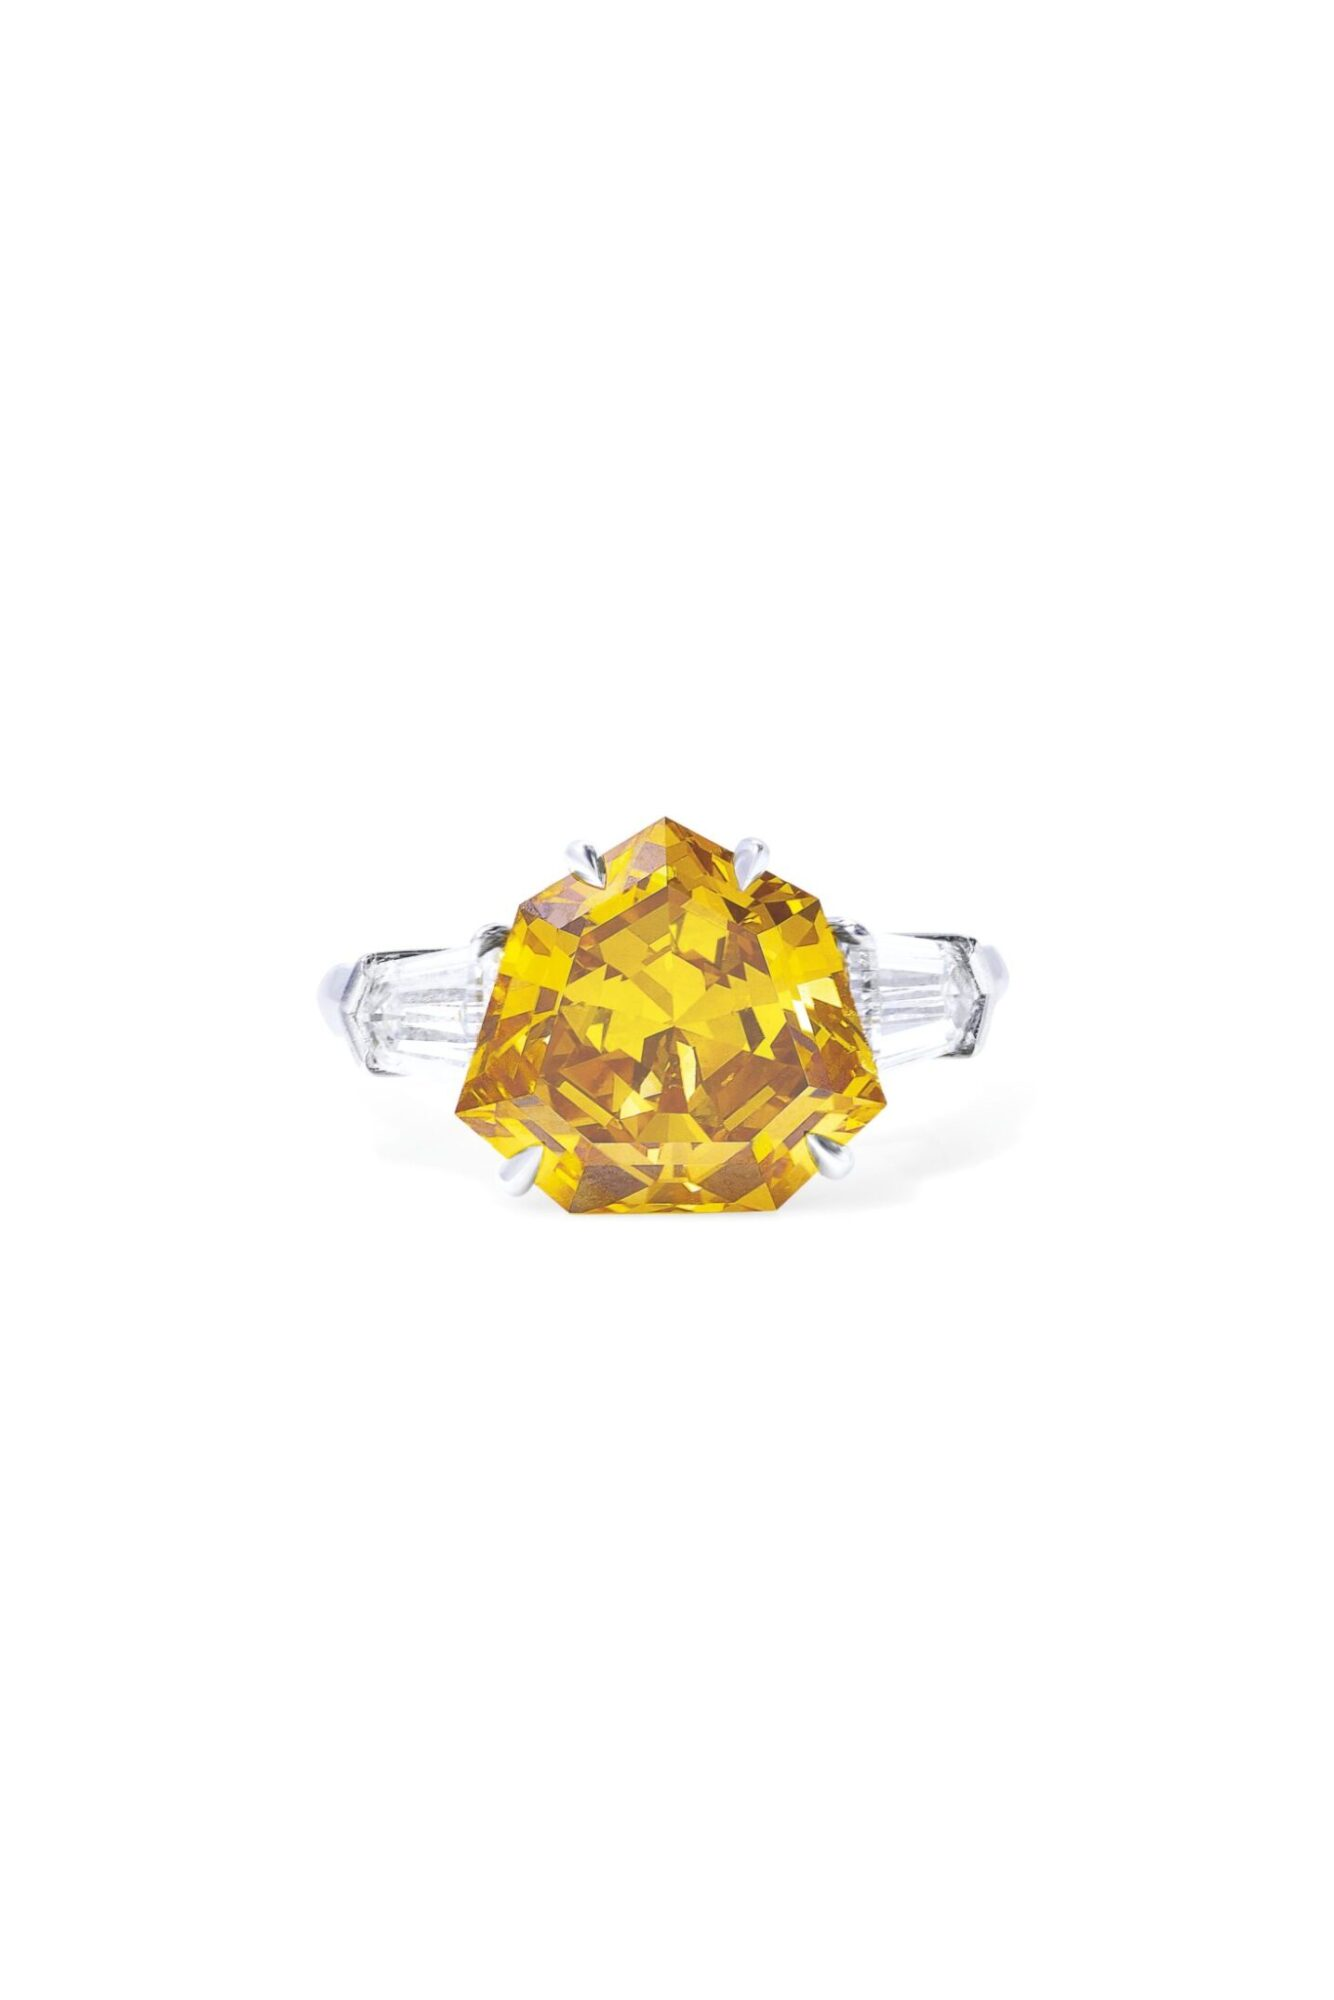 A yellow-orange modiefied diamond ring of 5.02 cts, estimate CHF300,000-500,000